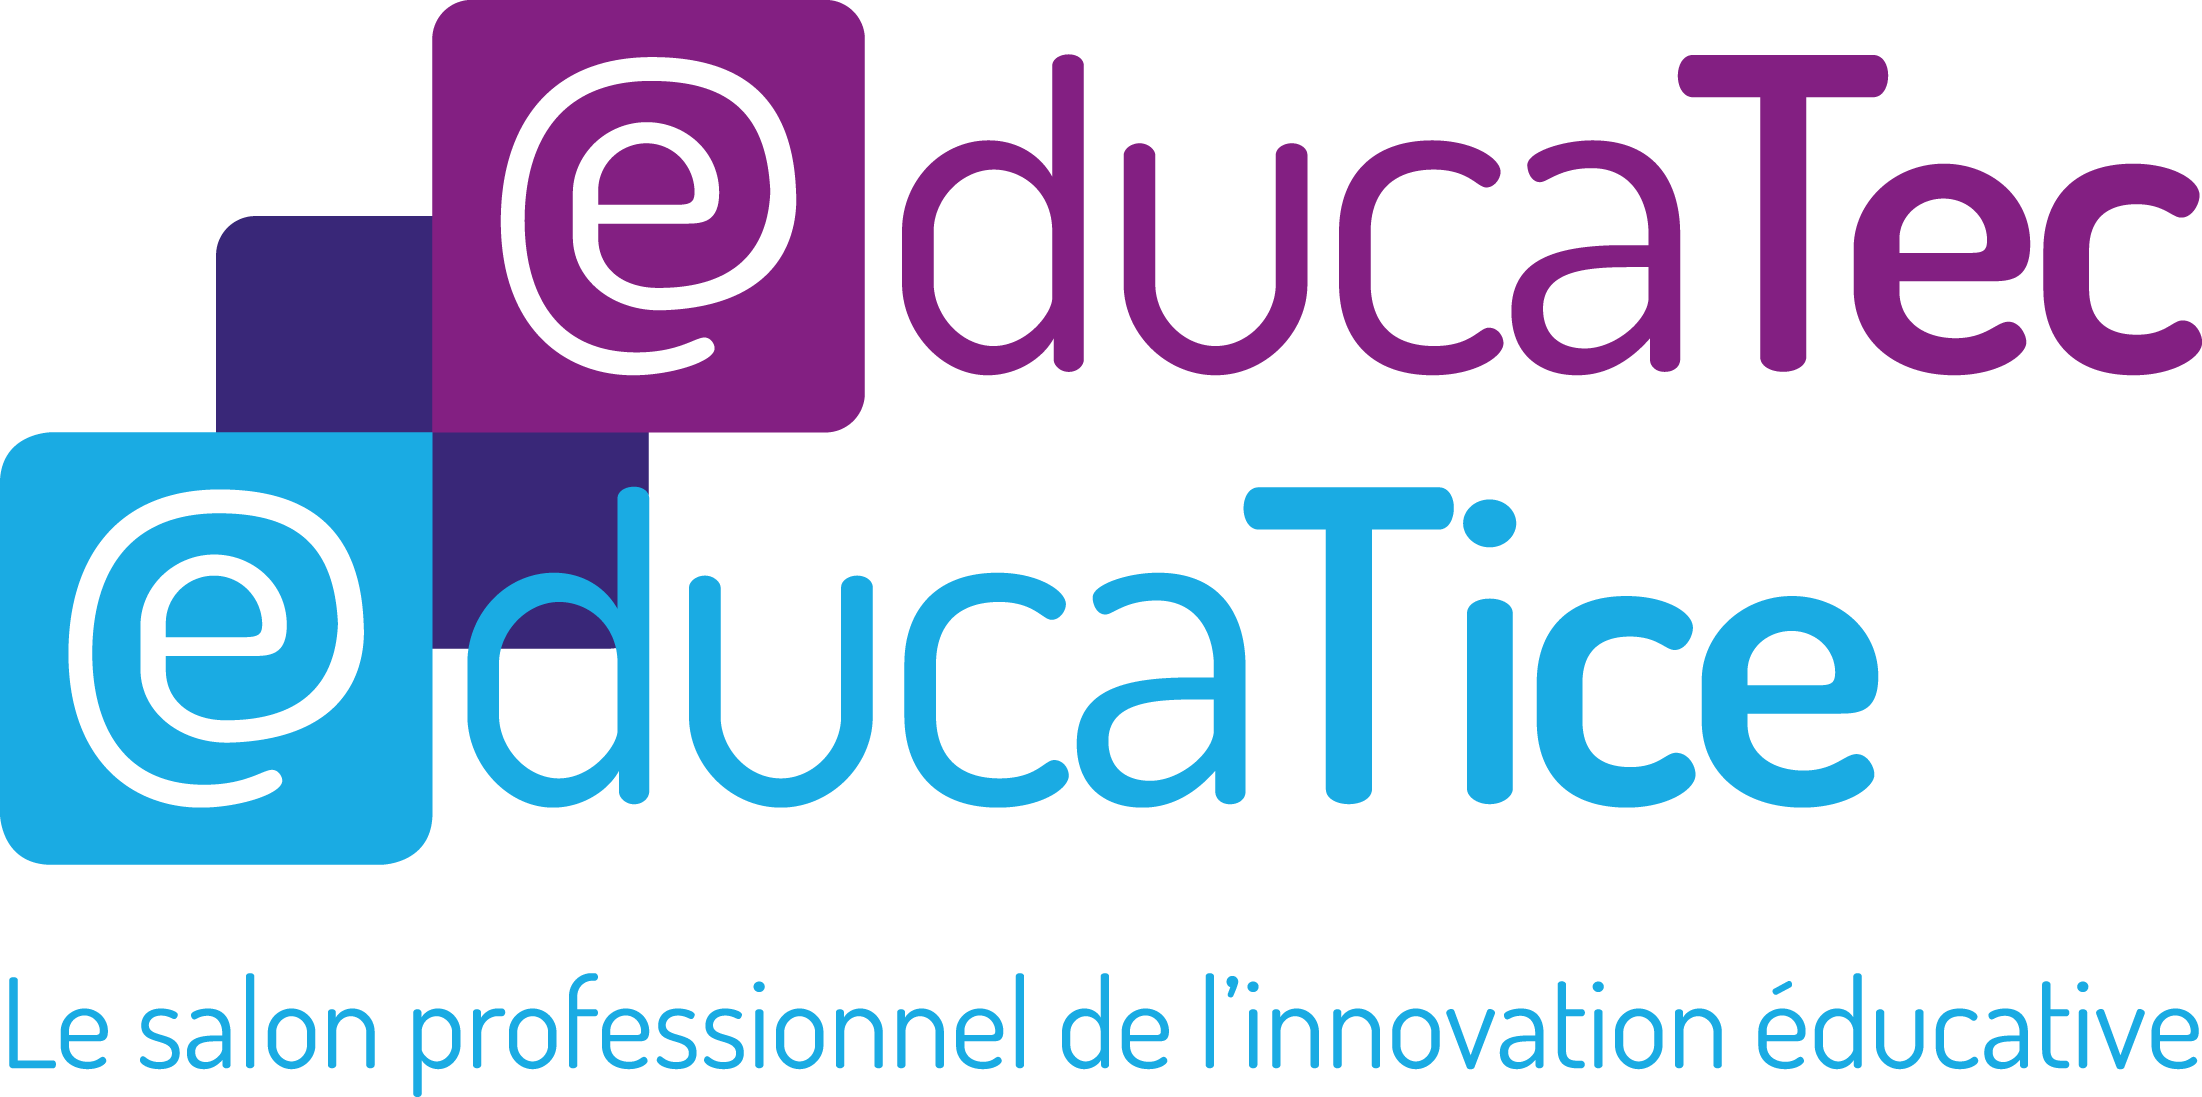 24ème édition du salon Educatec-Educatice